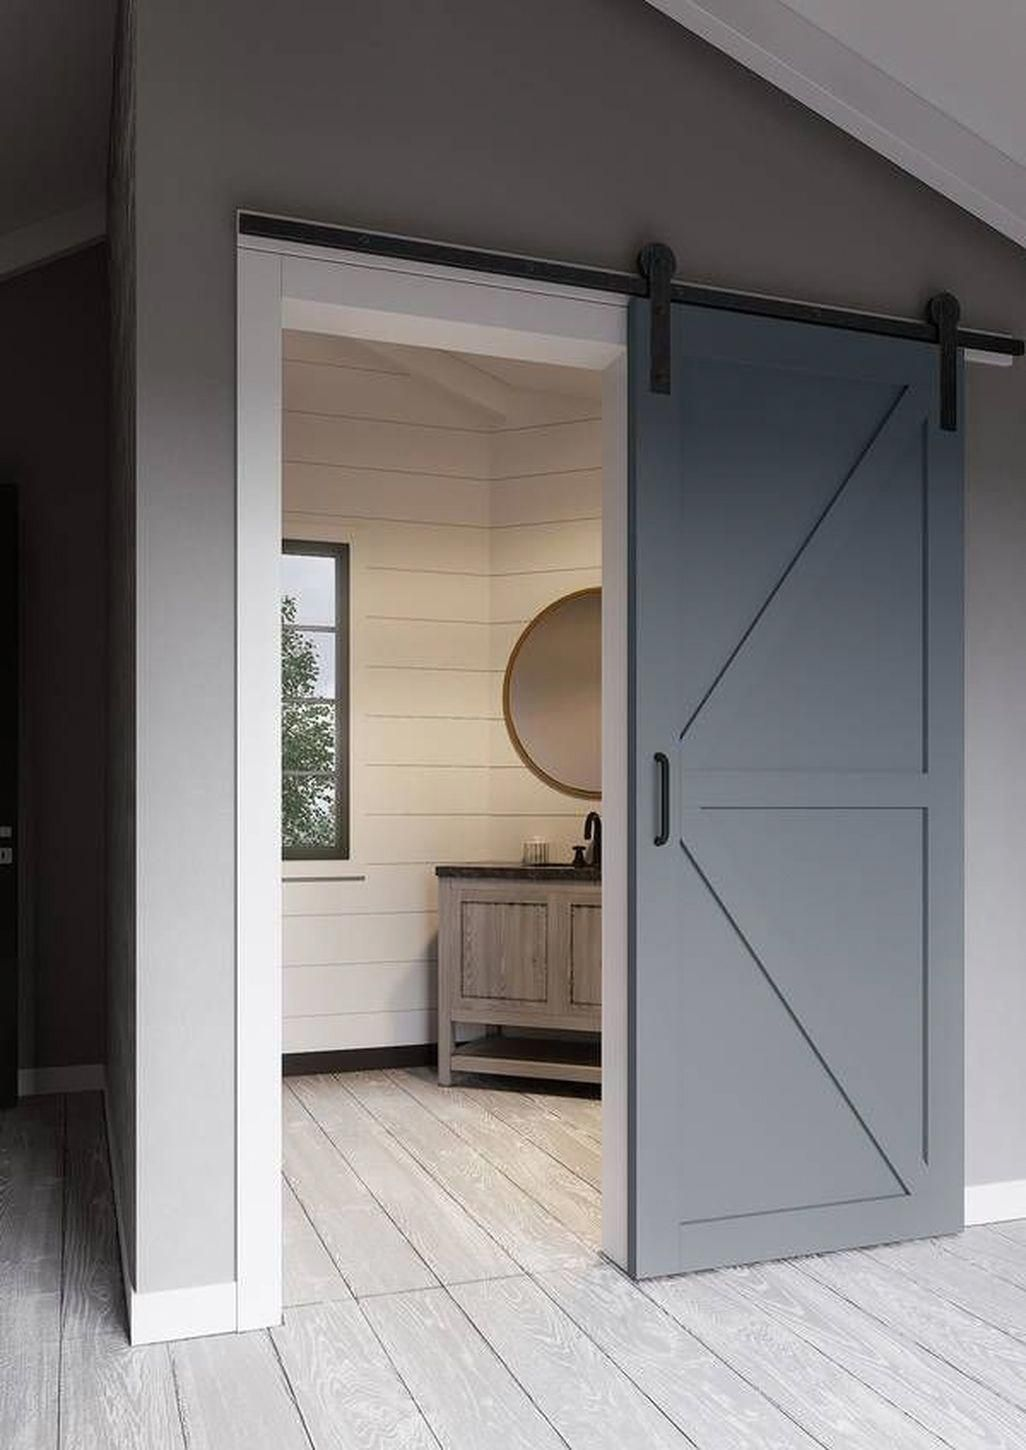 Sliding Door System Indoor Barn Doors For Sale Fold Flat Internal Doors 20190824 With Images Barn Style Sliding Doors Barn Doors Sliding Garage Door Design